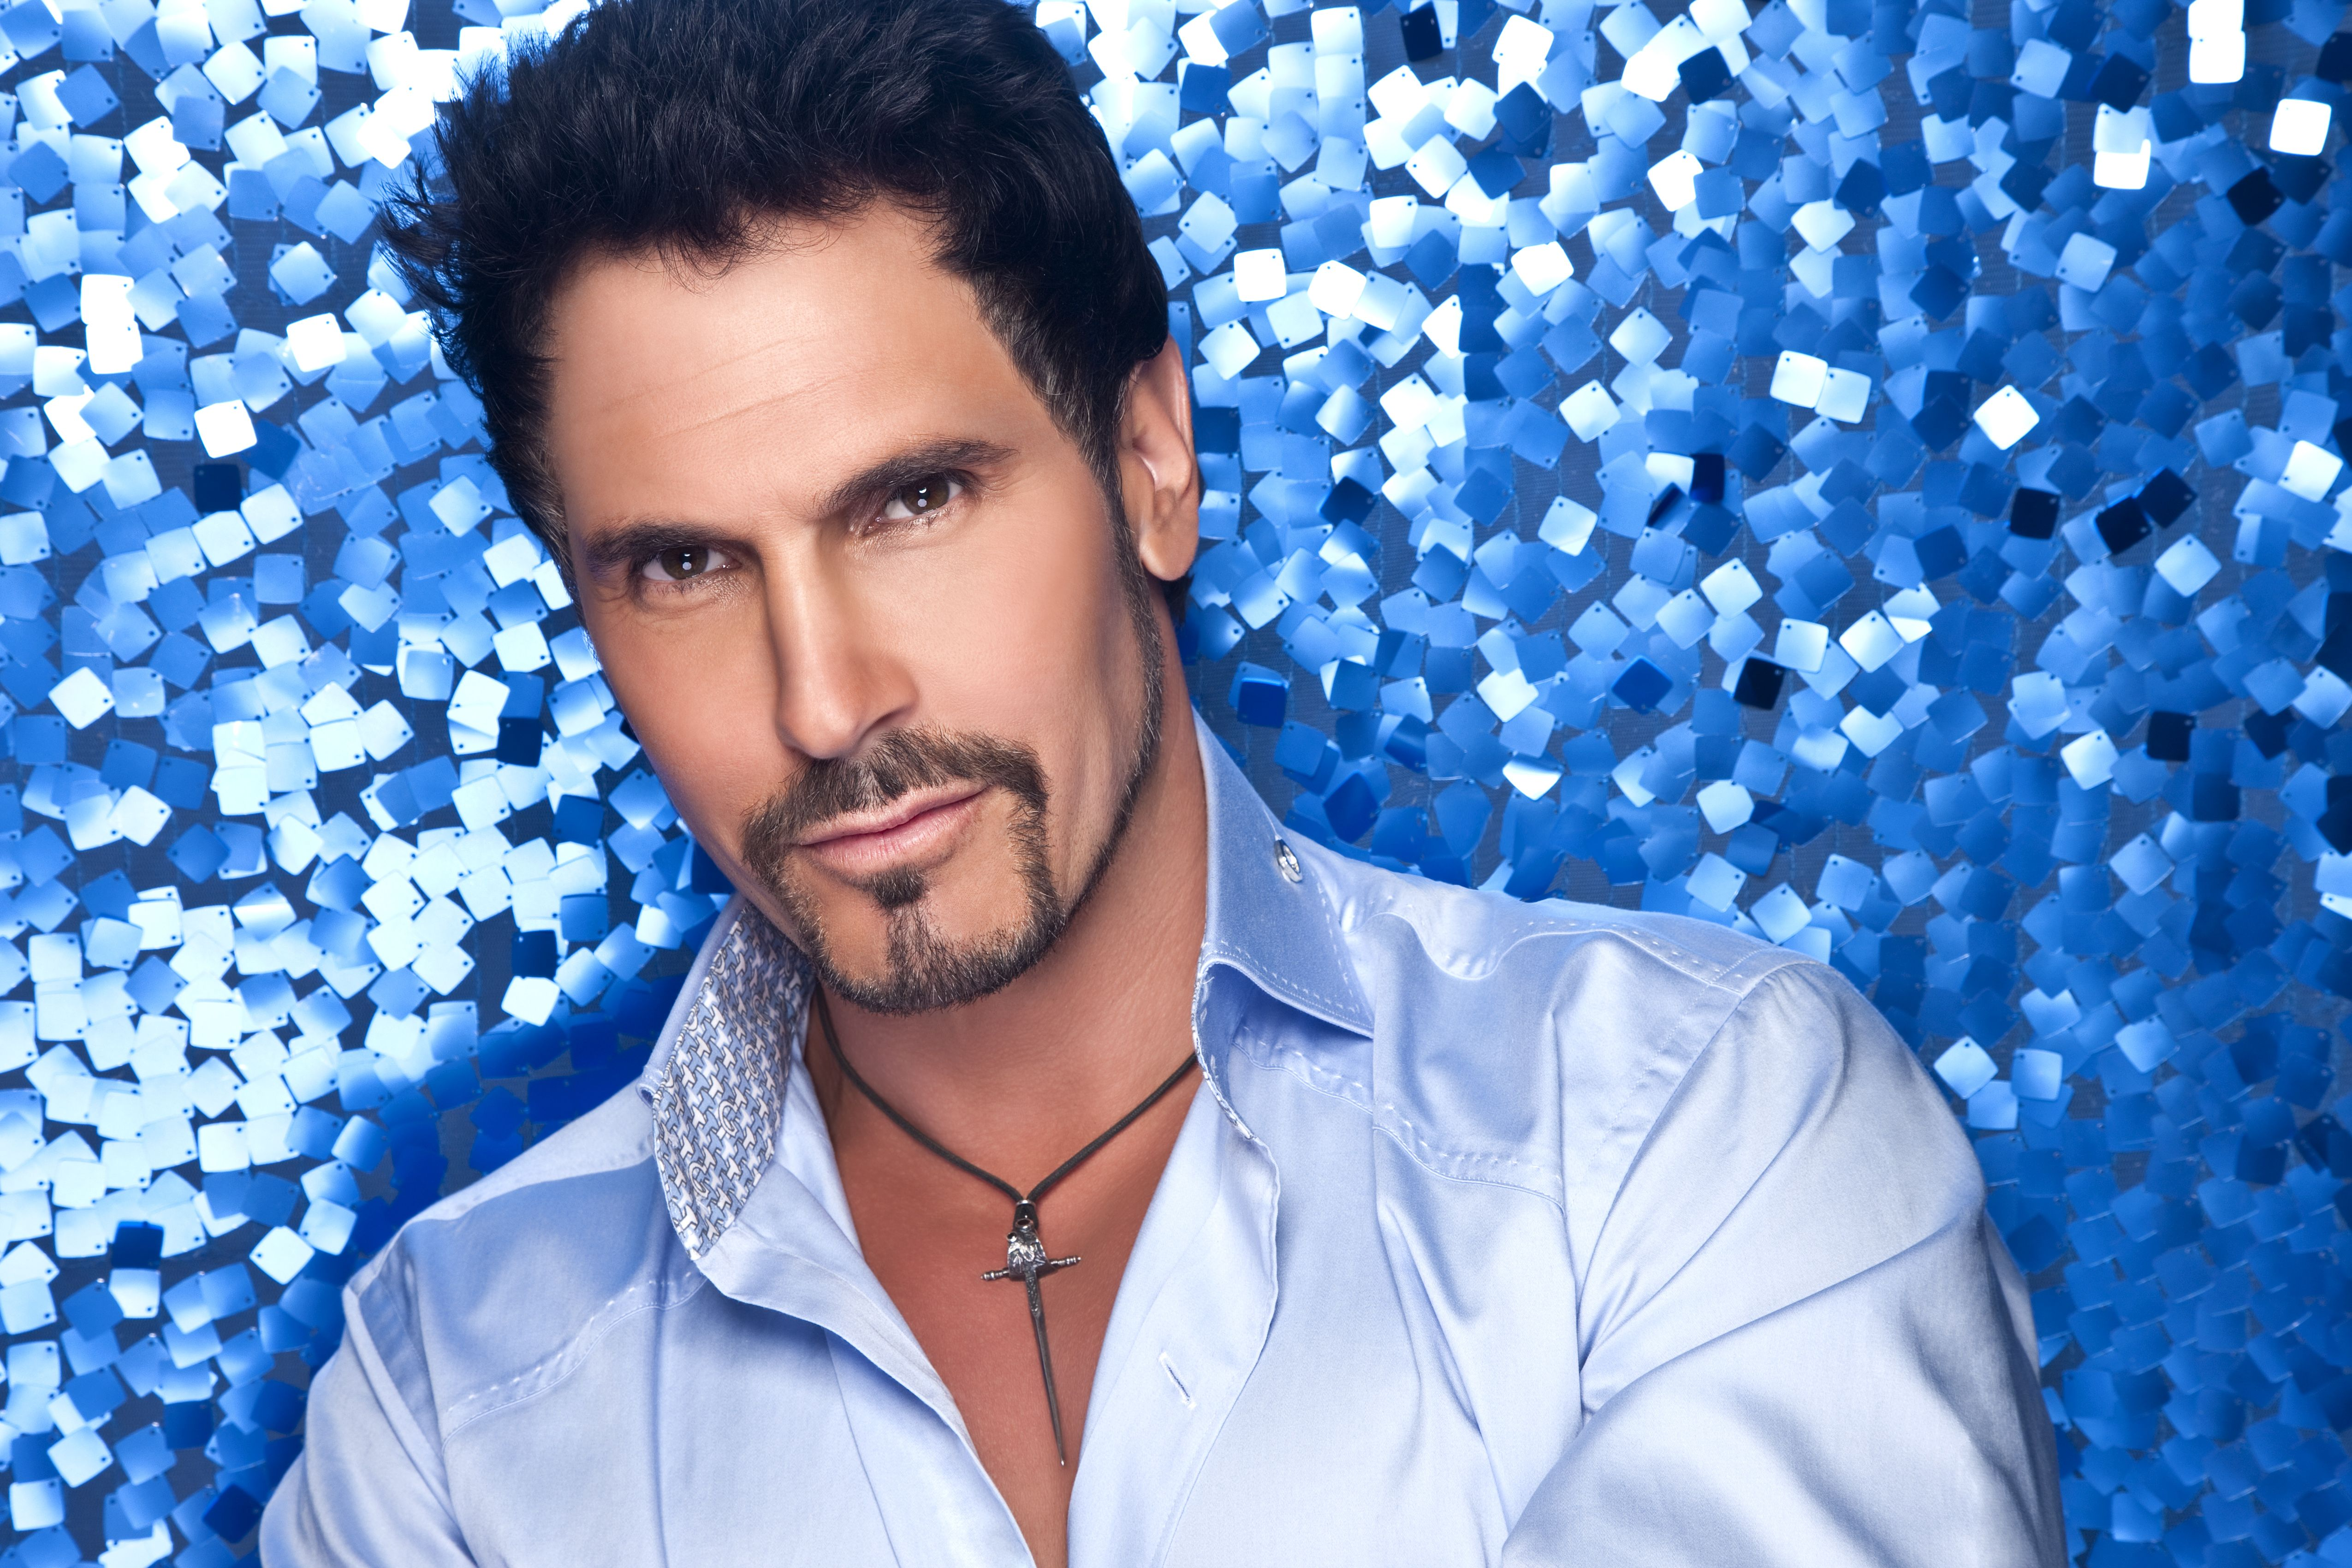 DonDiamont - Bill Spencer powerhouse from Bold and the Beautiful